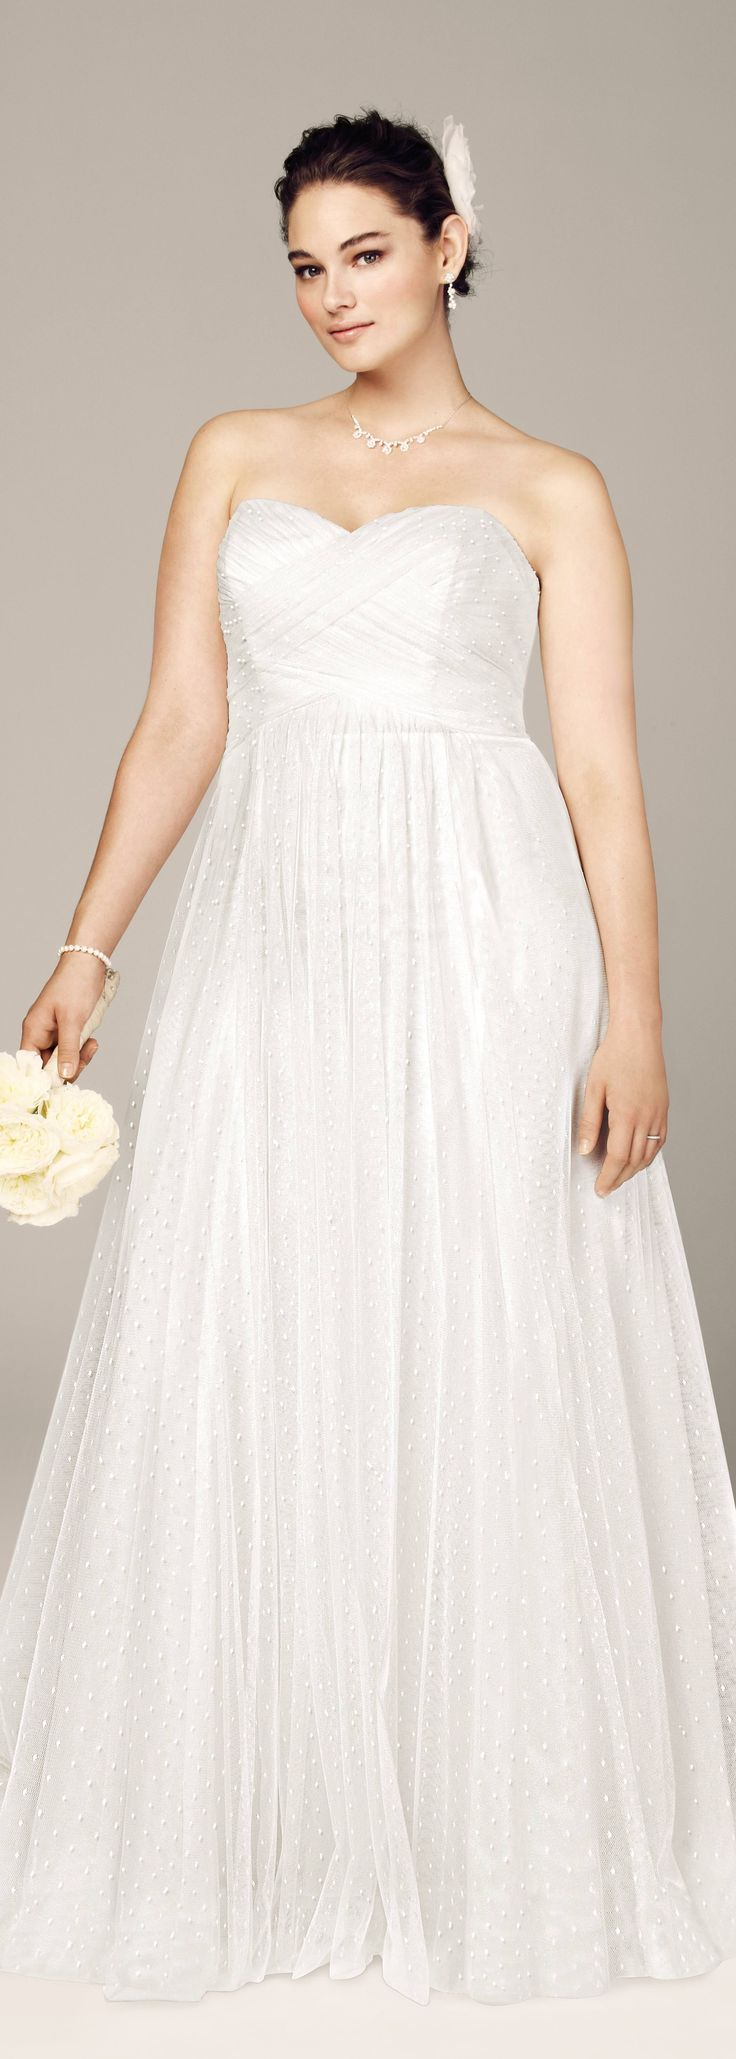 Cute Sweetheart Wedding Dress From David S Bridal Read